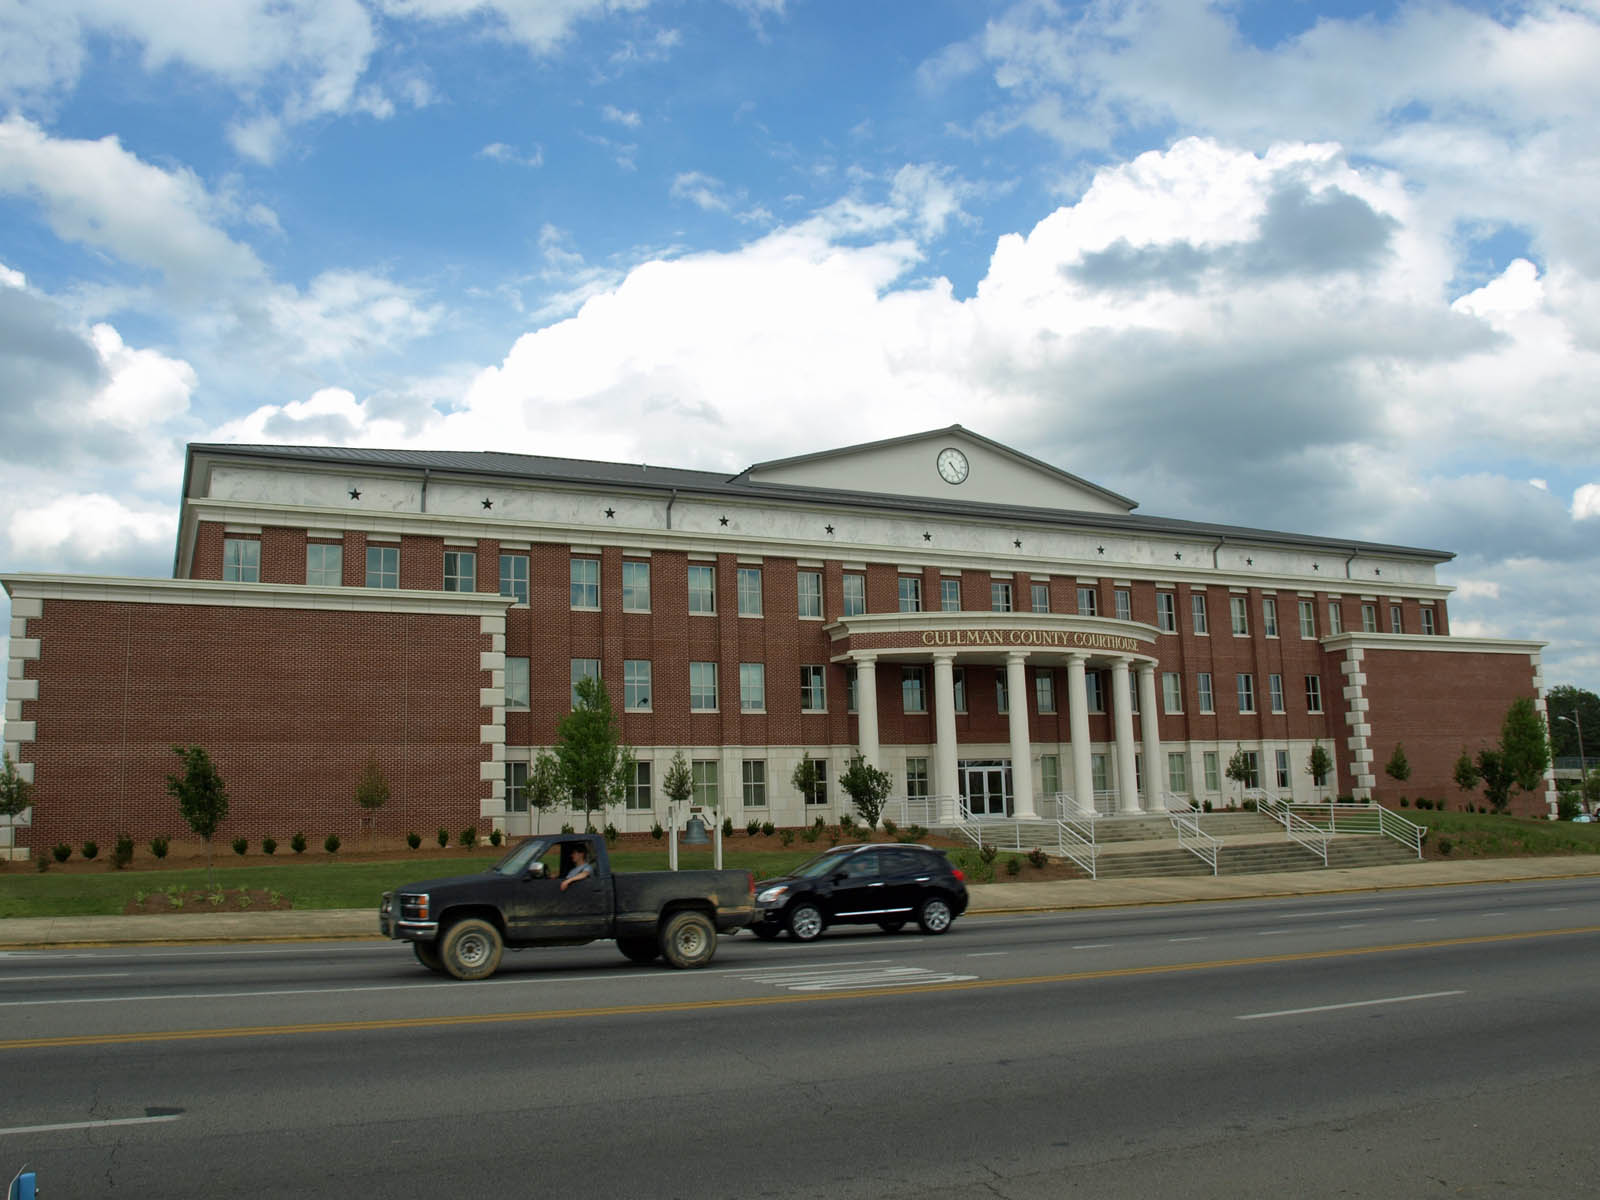 File:Cullman County Courthouse May 2013 1.jpg - Wikimedia Commonsbalance of cullman county